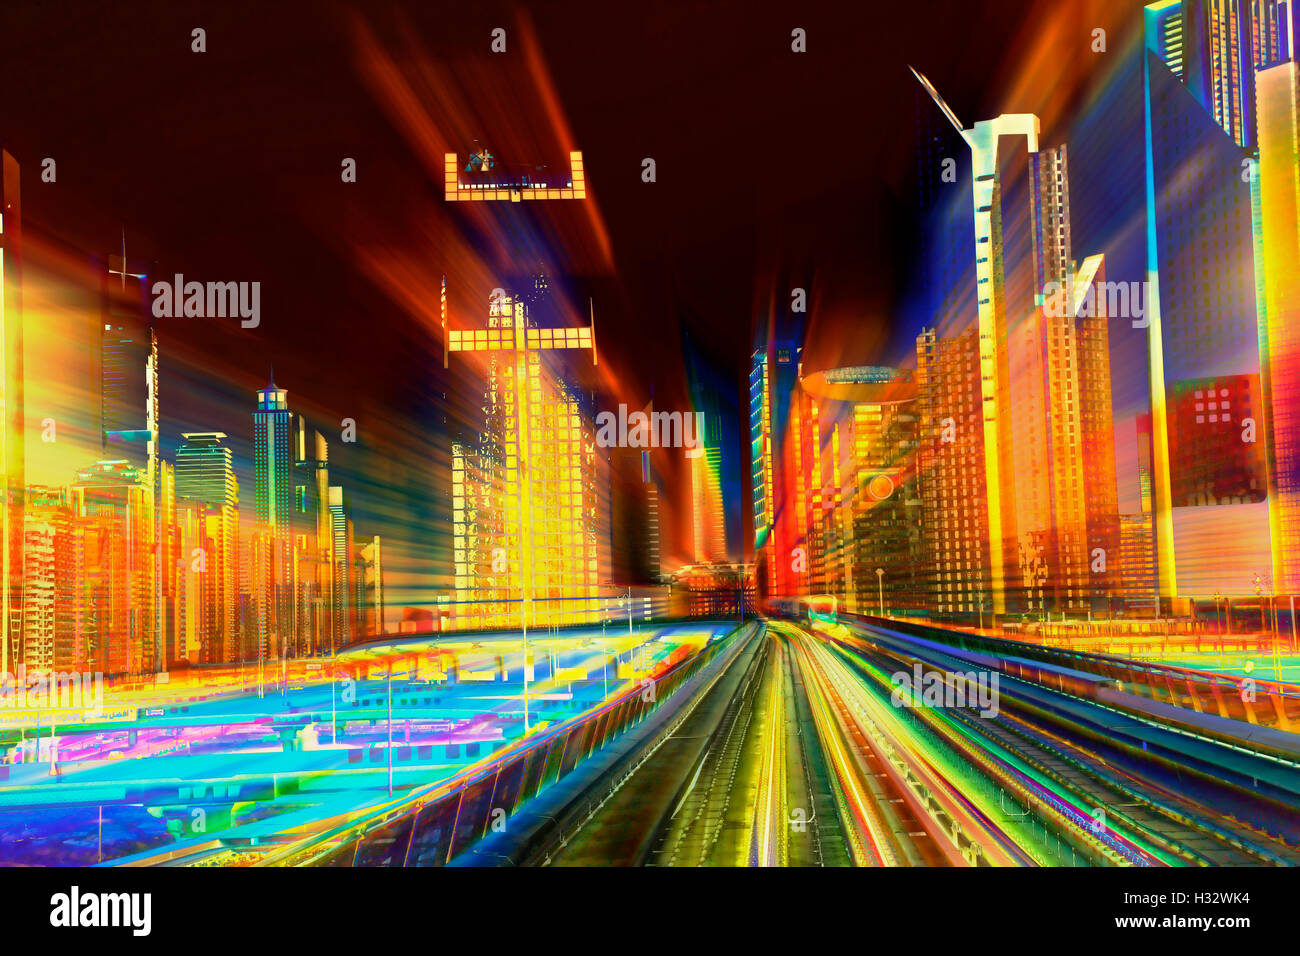 Abstract photo of Metro and illuminated buildings in the night - Stock Image